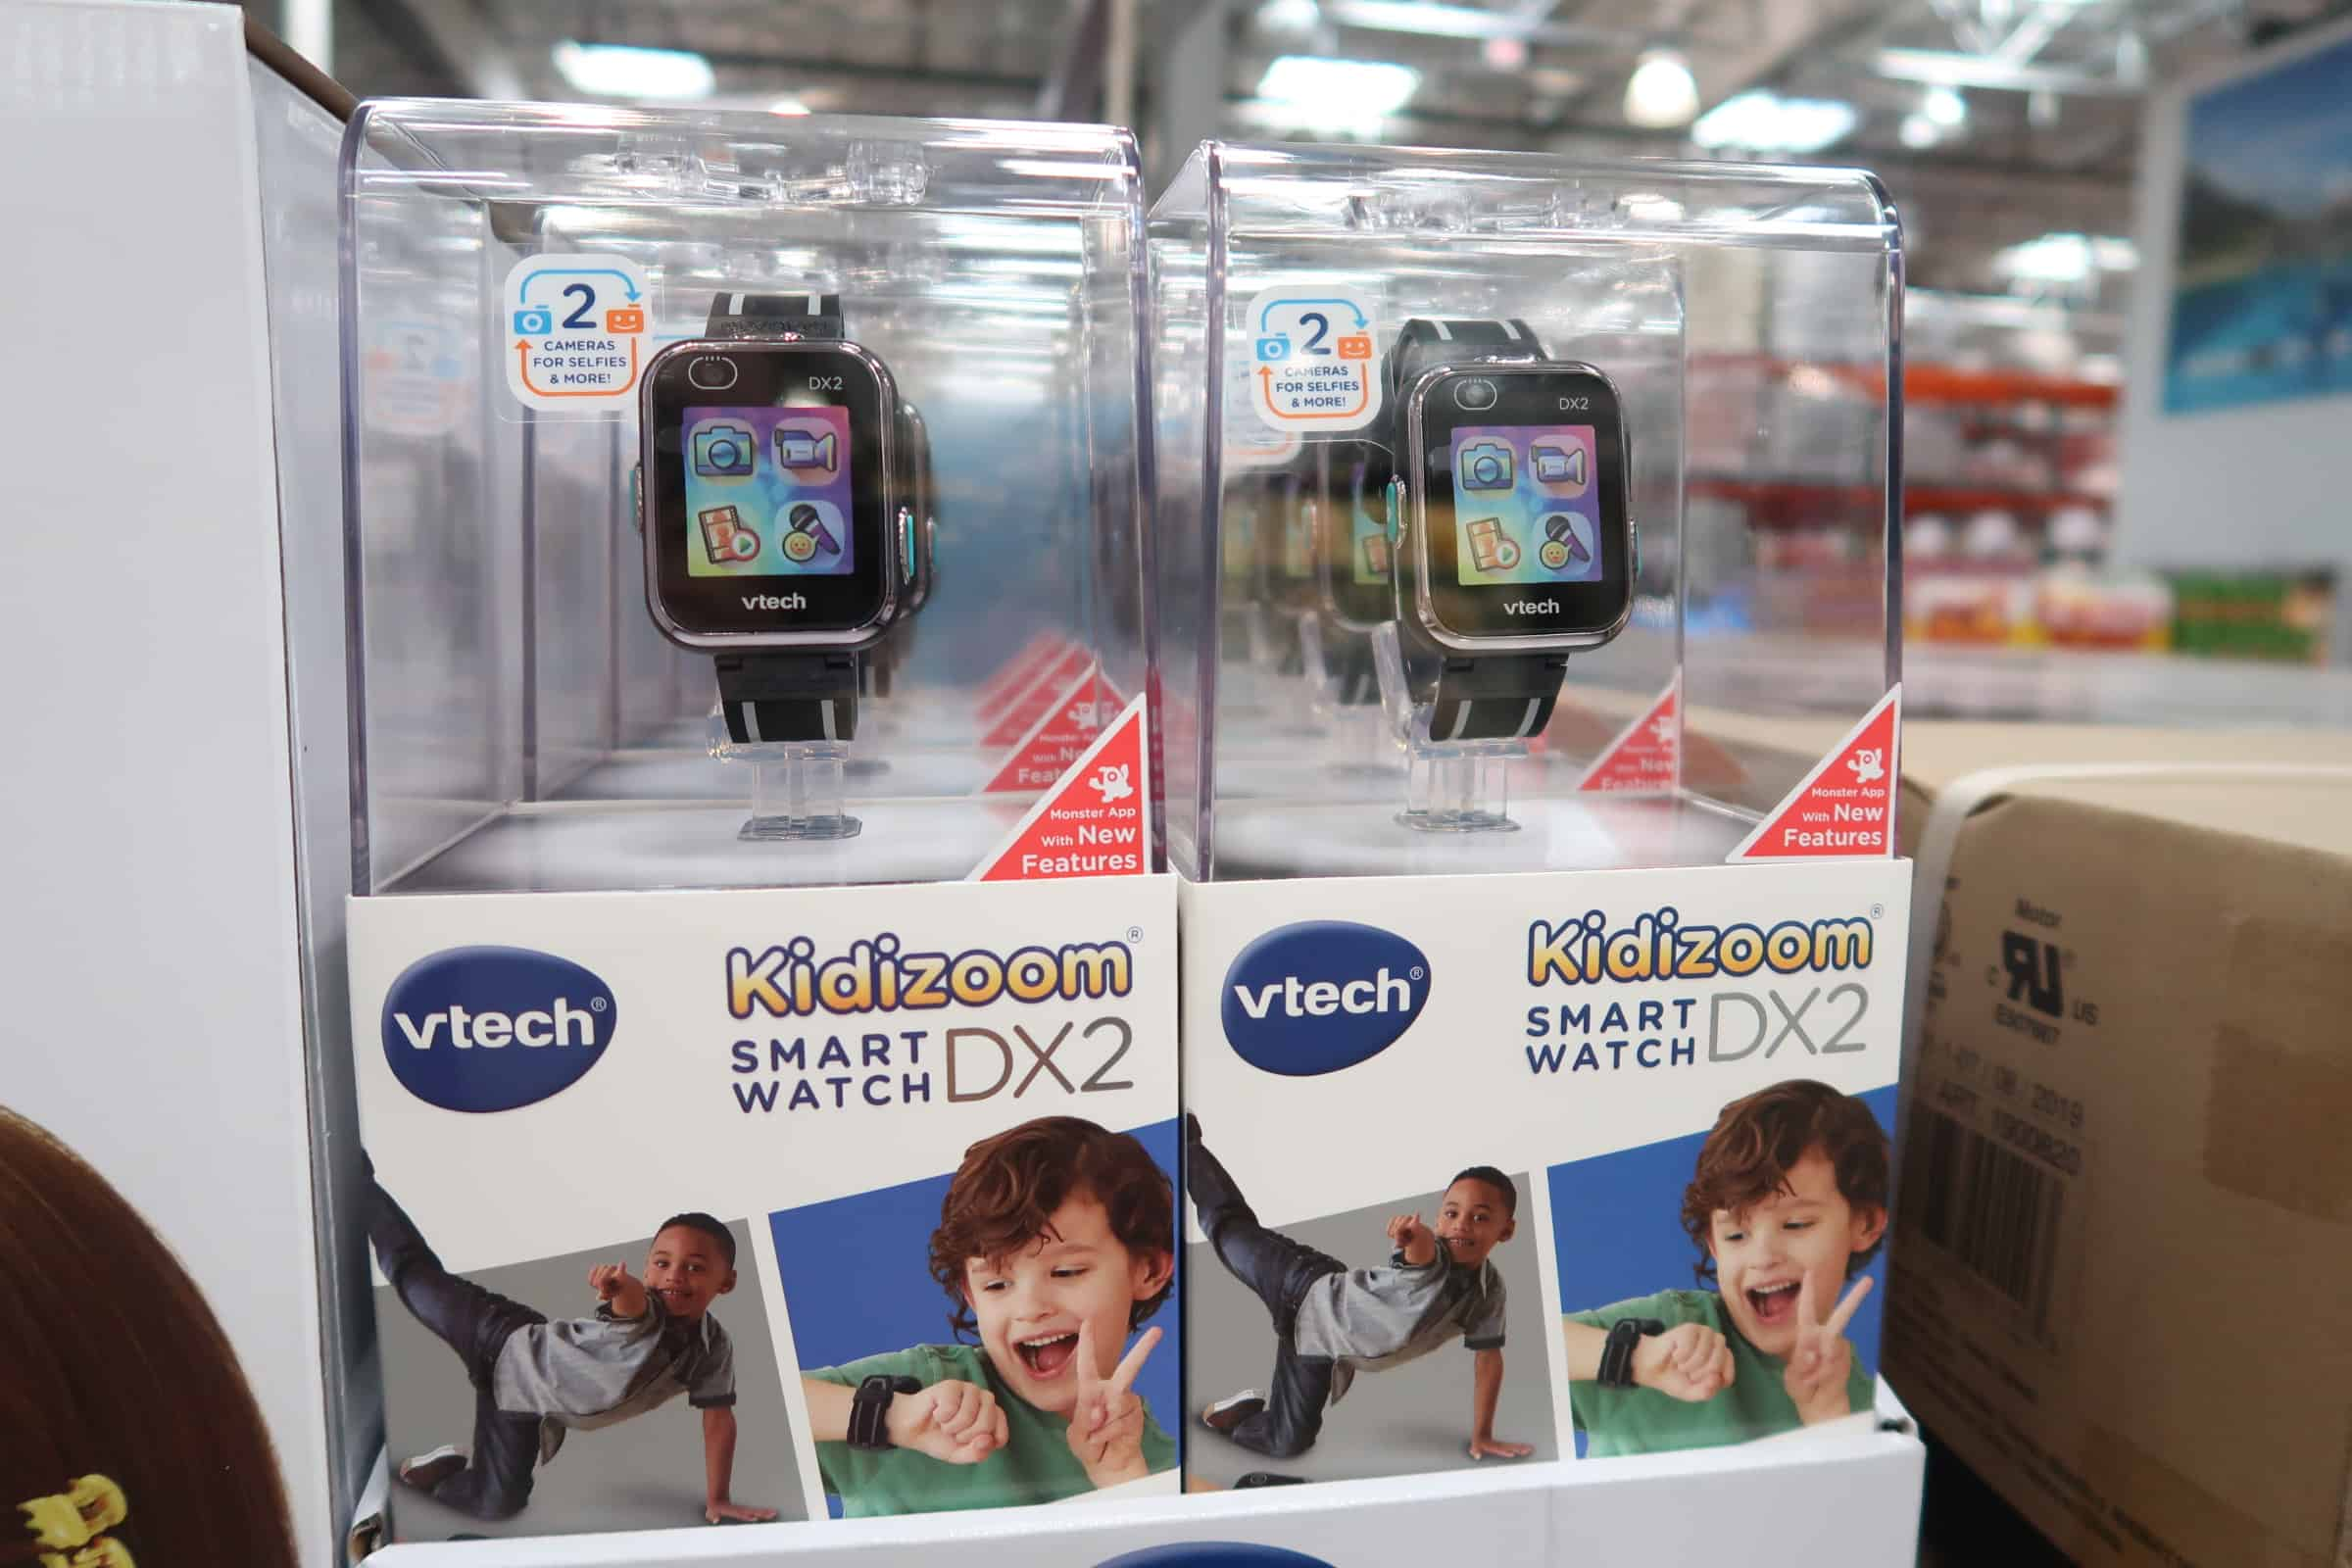 vtech watches at costco